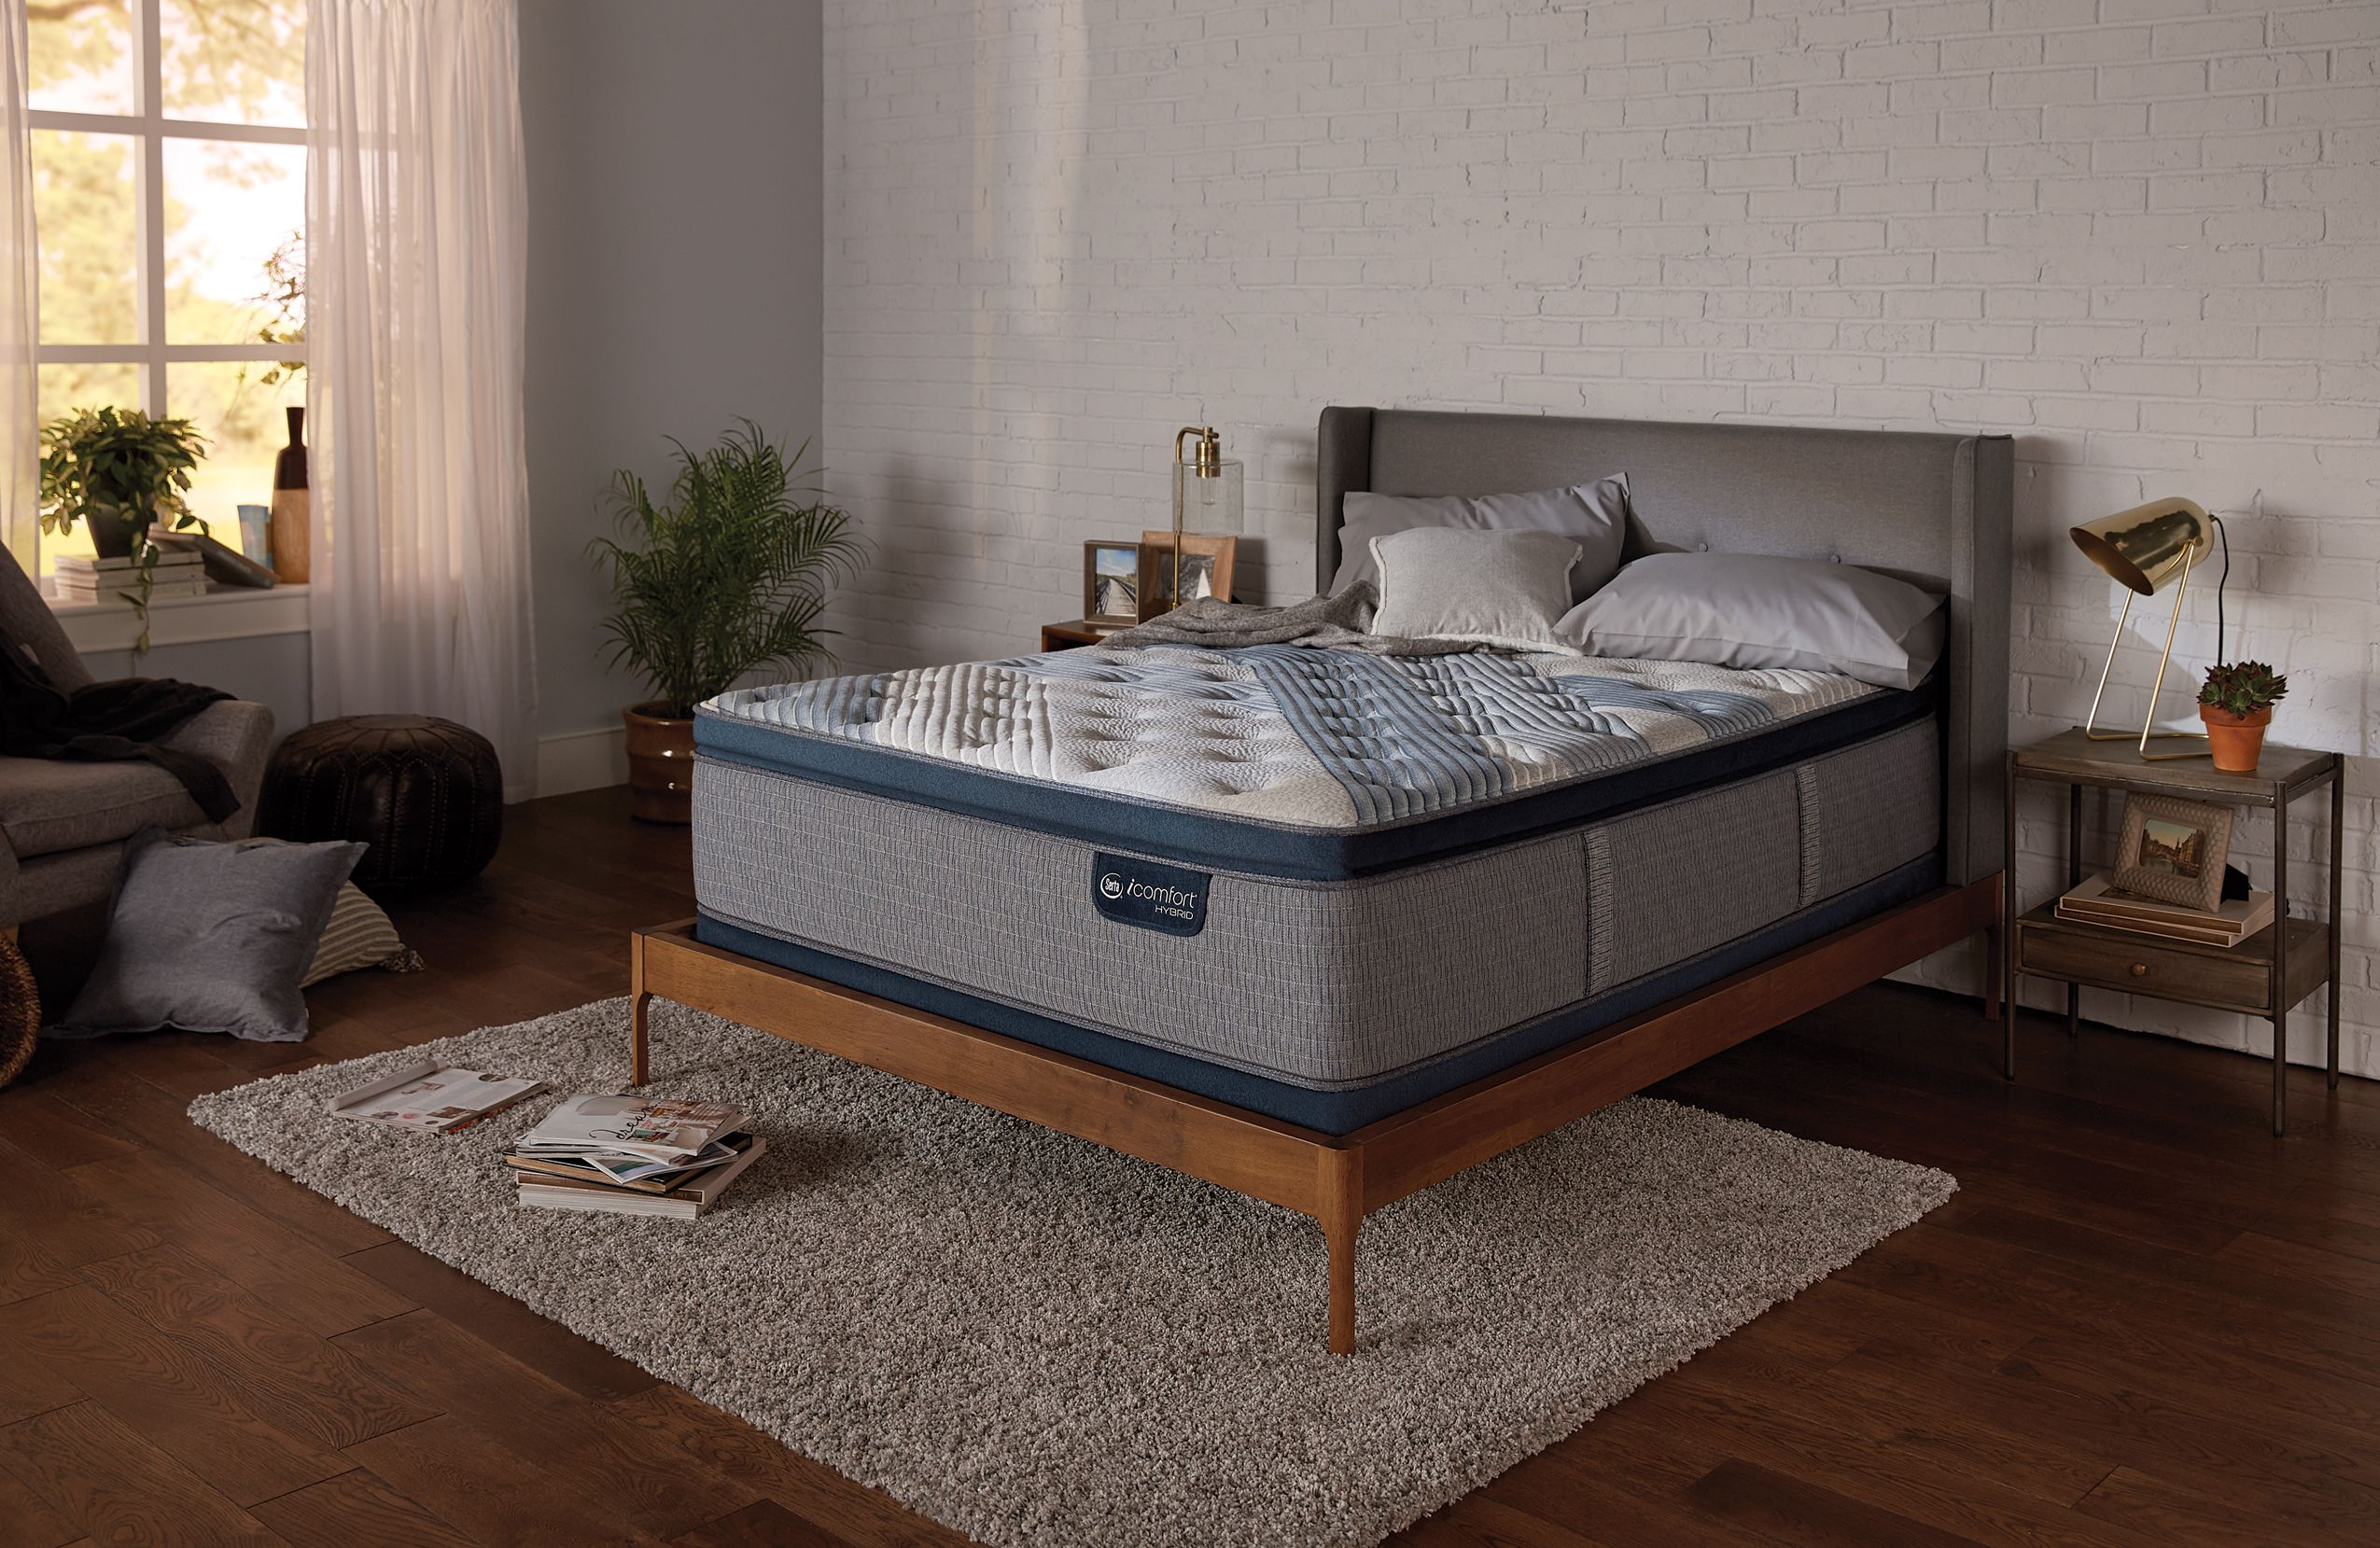 Serta Icomfort Blue Fusion 5000 Cushion Firm Pillow Top In Mattress Reviews Goodbed